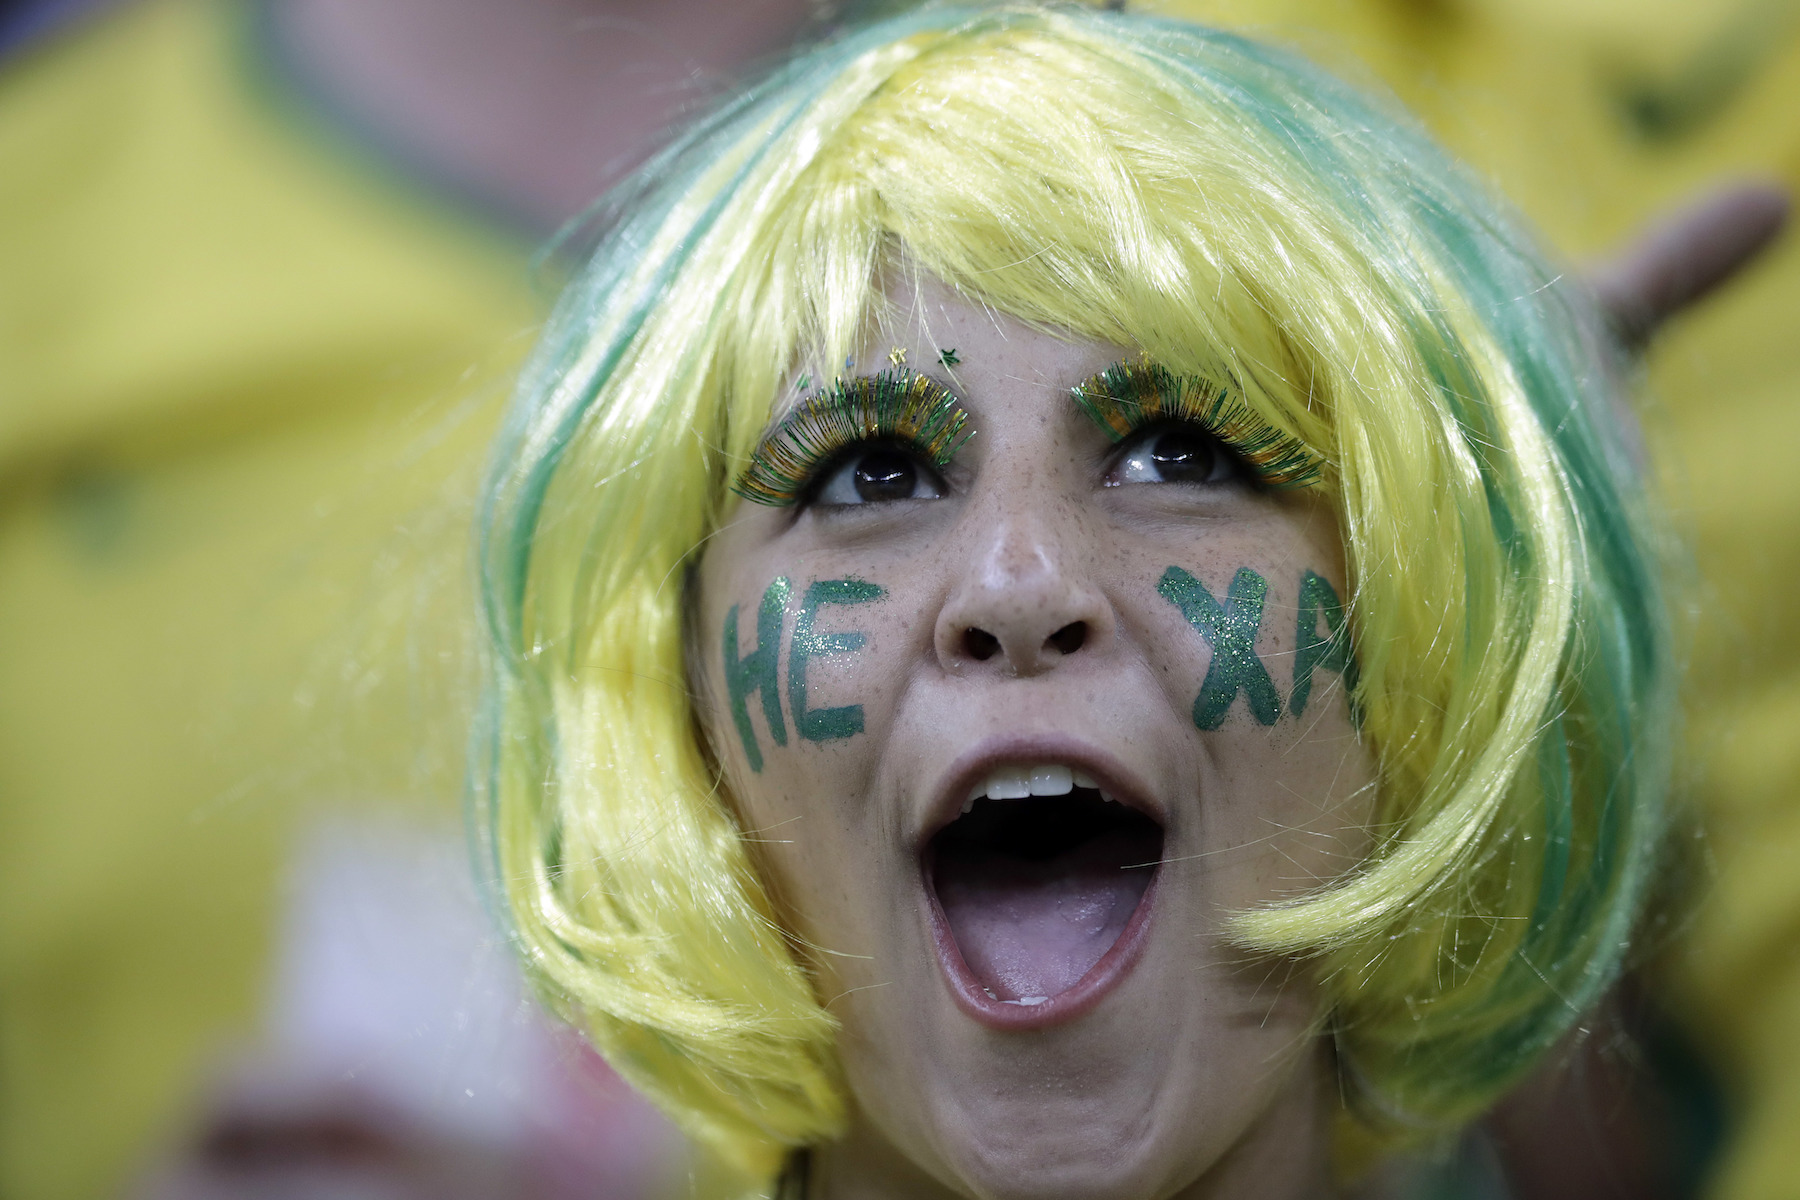 "<div class=""meta image-caption""><div class=""origin-logo origin-image ap""><span>AP</span></div><span class=""caption-text"">A soccer fan cheers ahead of the group E match between Brazil and Switzerland at the 2018 soccer World Cup in the Rostov Arena in Rostov-on-Don, Russia, Sunday, June 17, 2018. (AP Photo/Felipe Dana)</span></div>"